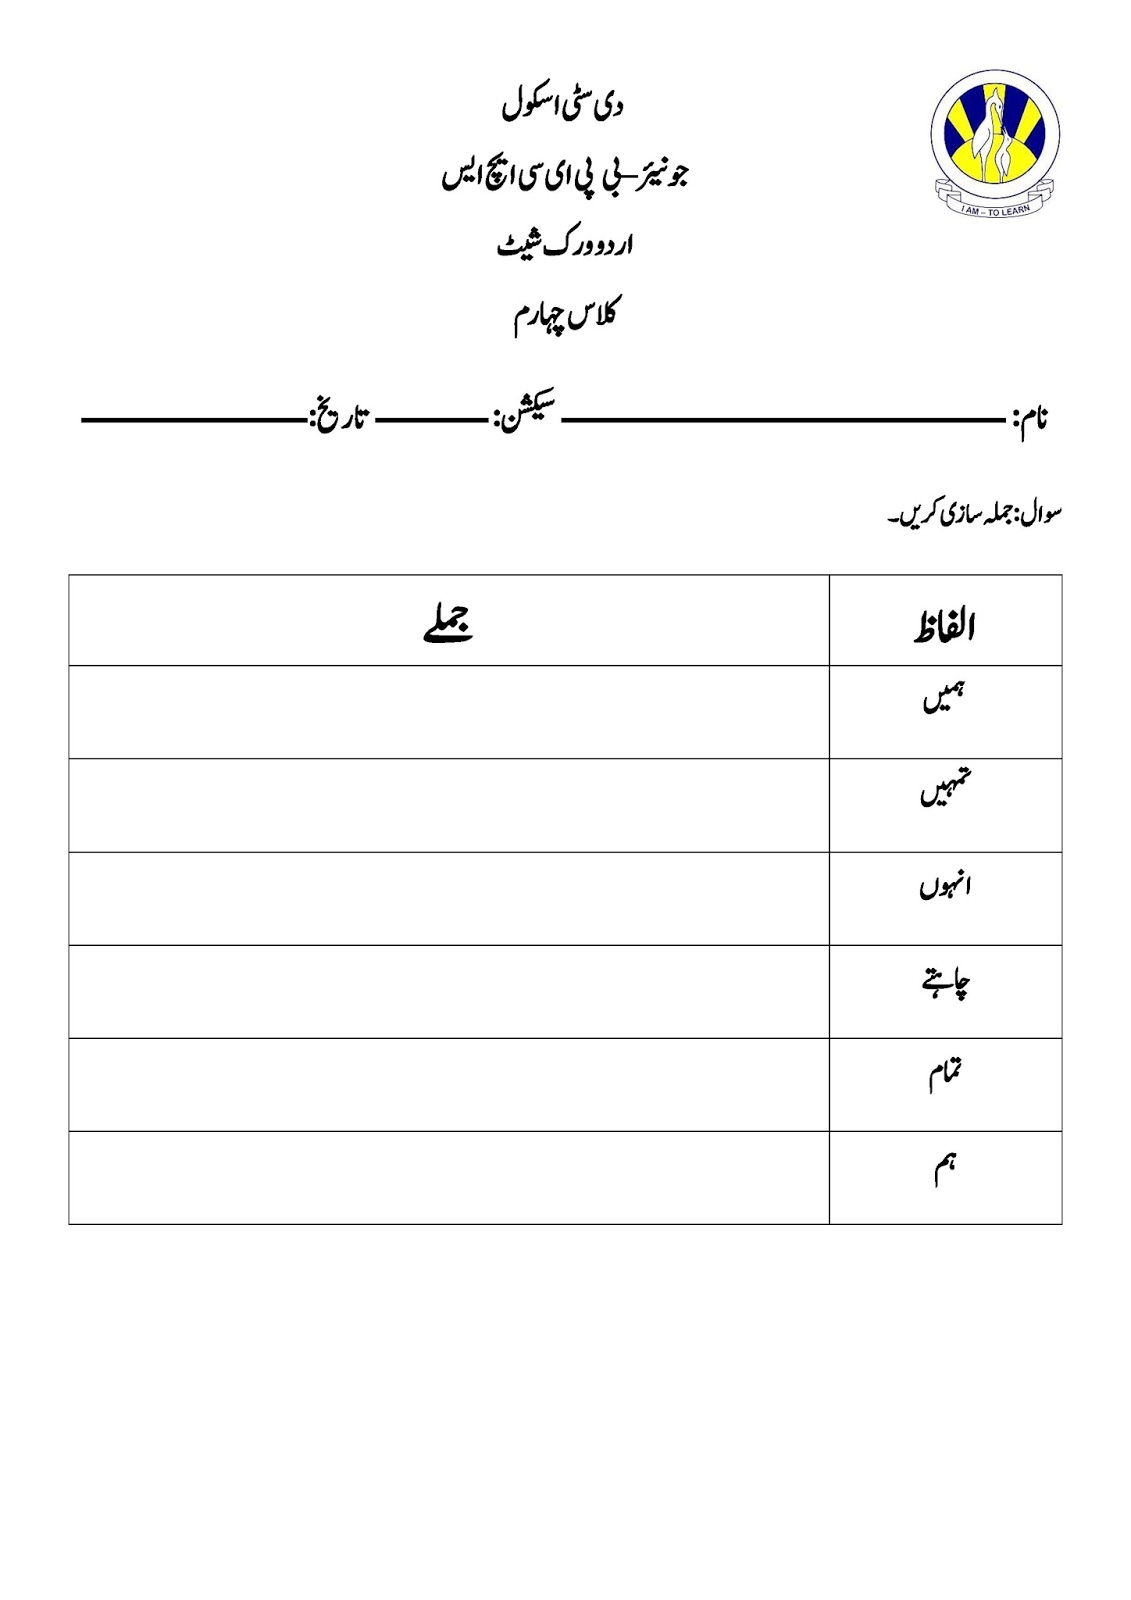 the city school worksheet for class 4 science s s t english urdu maths. Black Bedroom Furniture Sets. Home Design Ideas